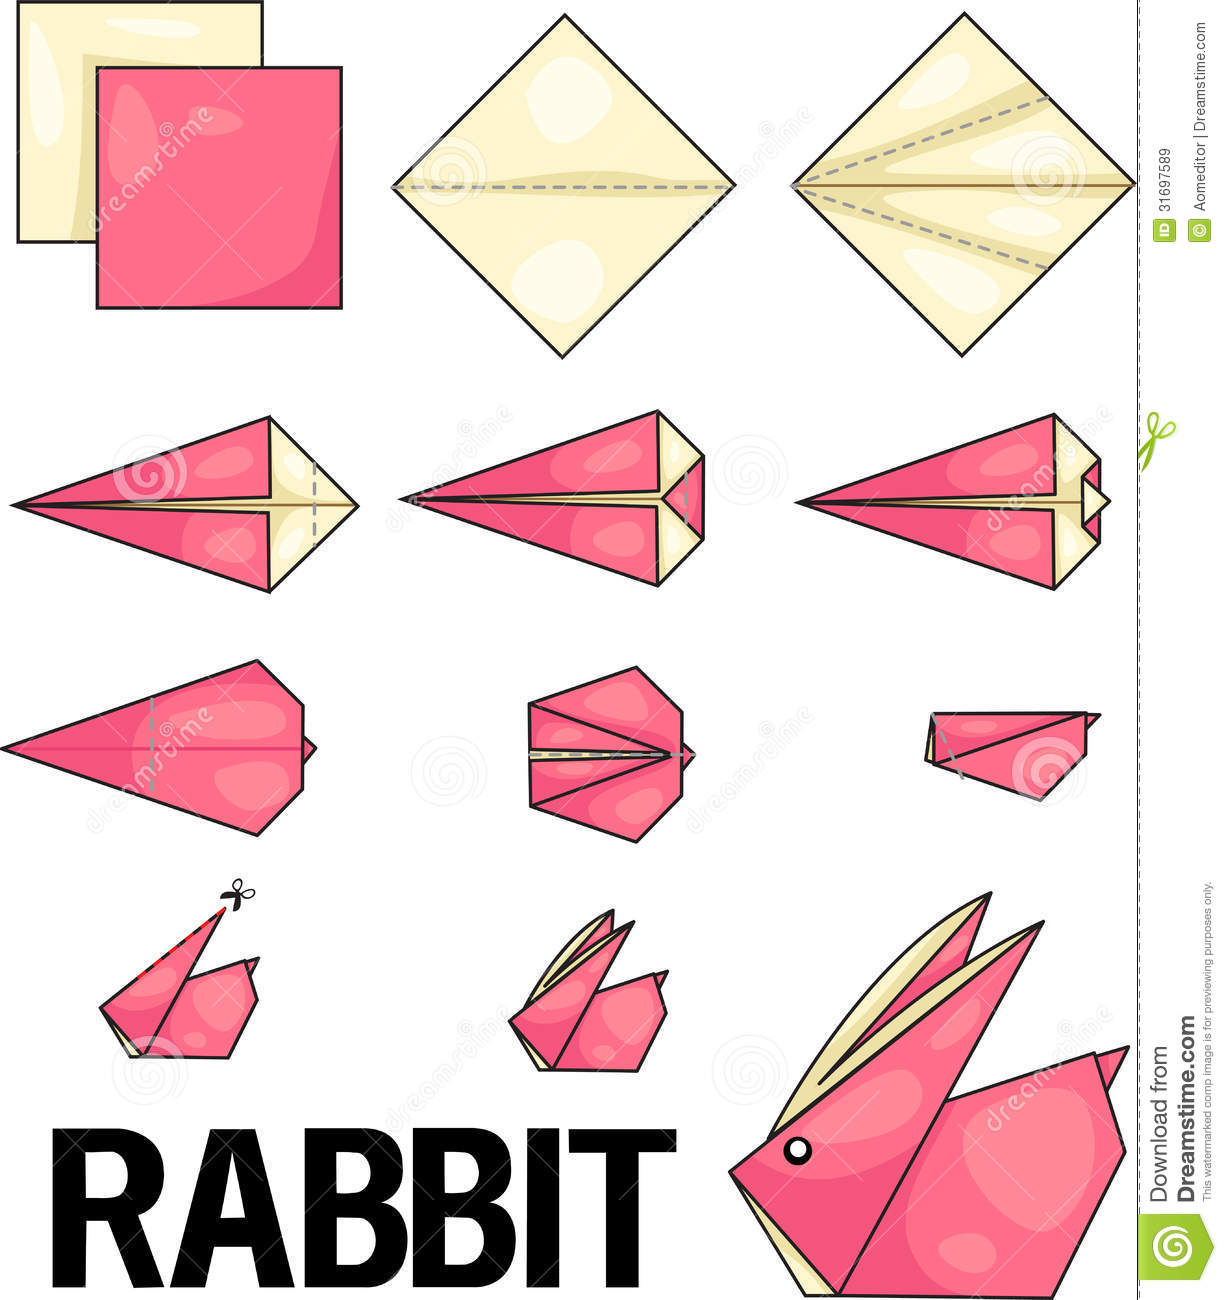 Origami Rabbit Royalty Free Stock Images - Image: 31697589